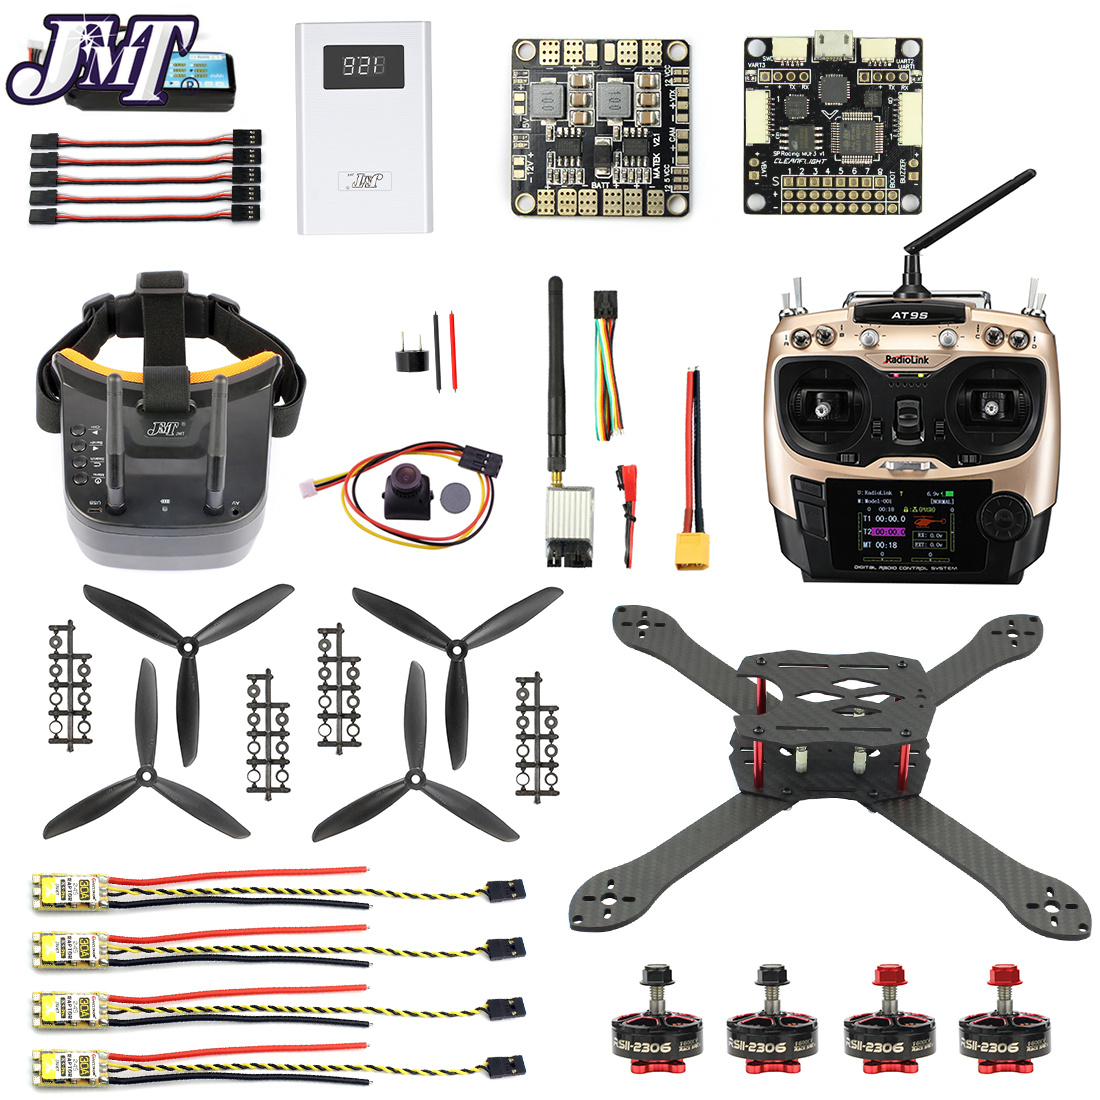 Pro SP Racing F3 300mm 2.4G 10CH FPV RC Quadcopter ARF RTF DIY Combo Carbon Fiber Brushless Camera Drone 700TVL with FPV Goggles jmt leader 120 120mm carbon fiber diy mini fpv racing quadcopter receiver drone camera osd f3 brushless bnf combo set